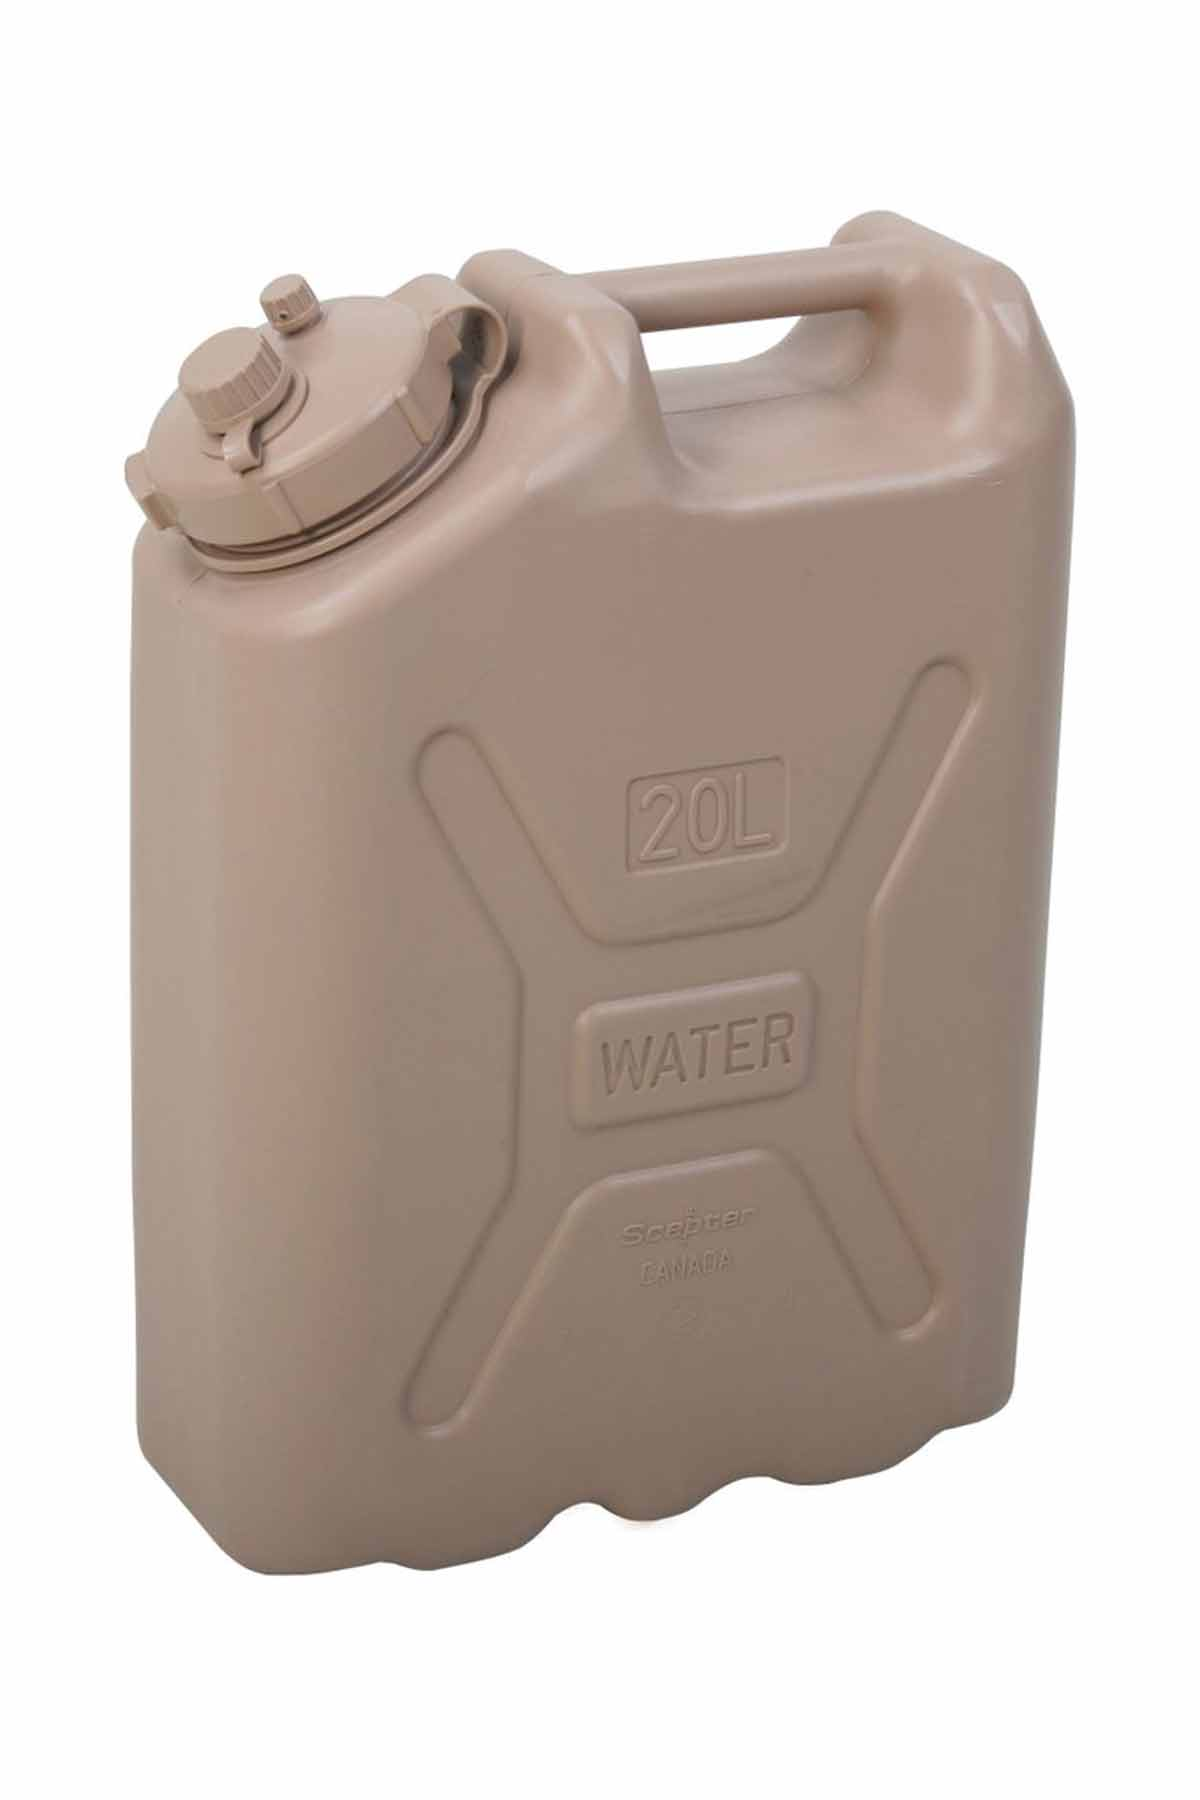 NRS 5 Gallon Scepter Water Container